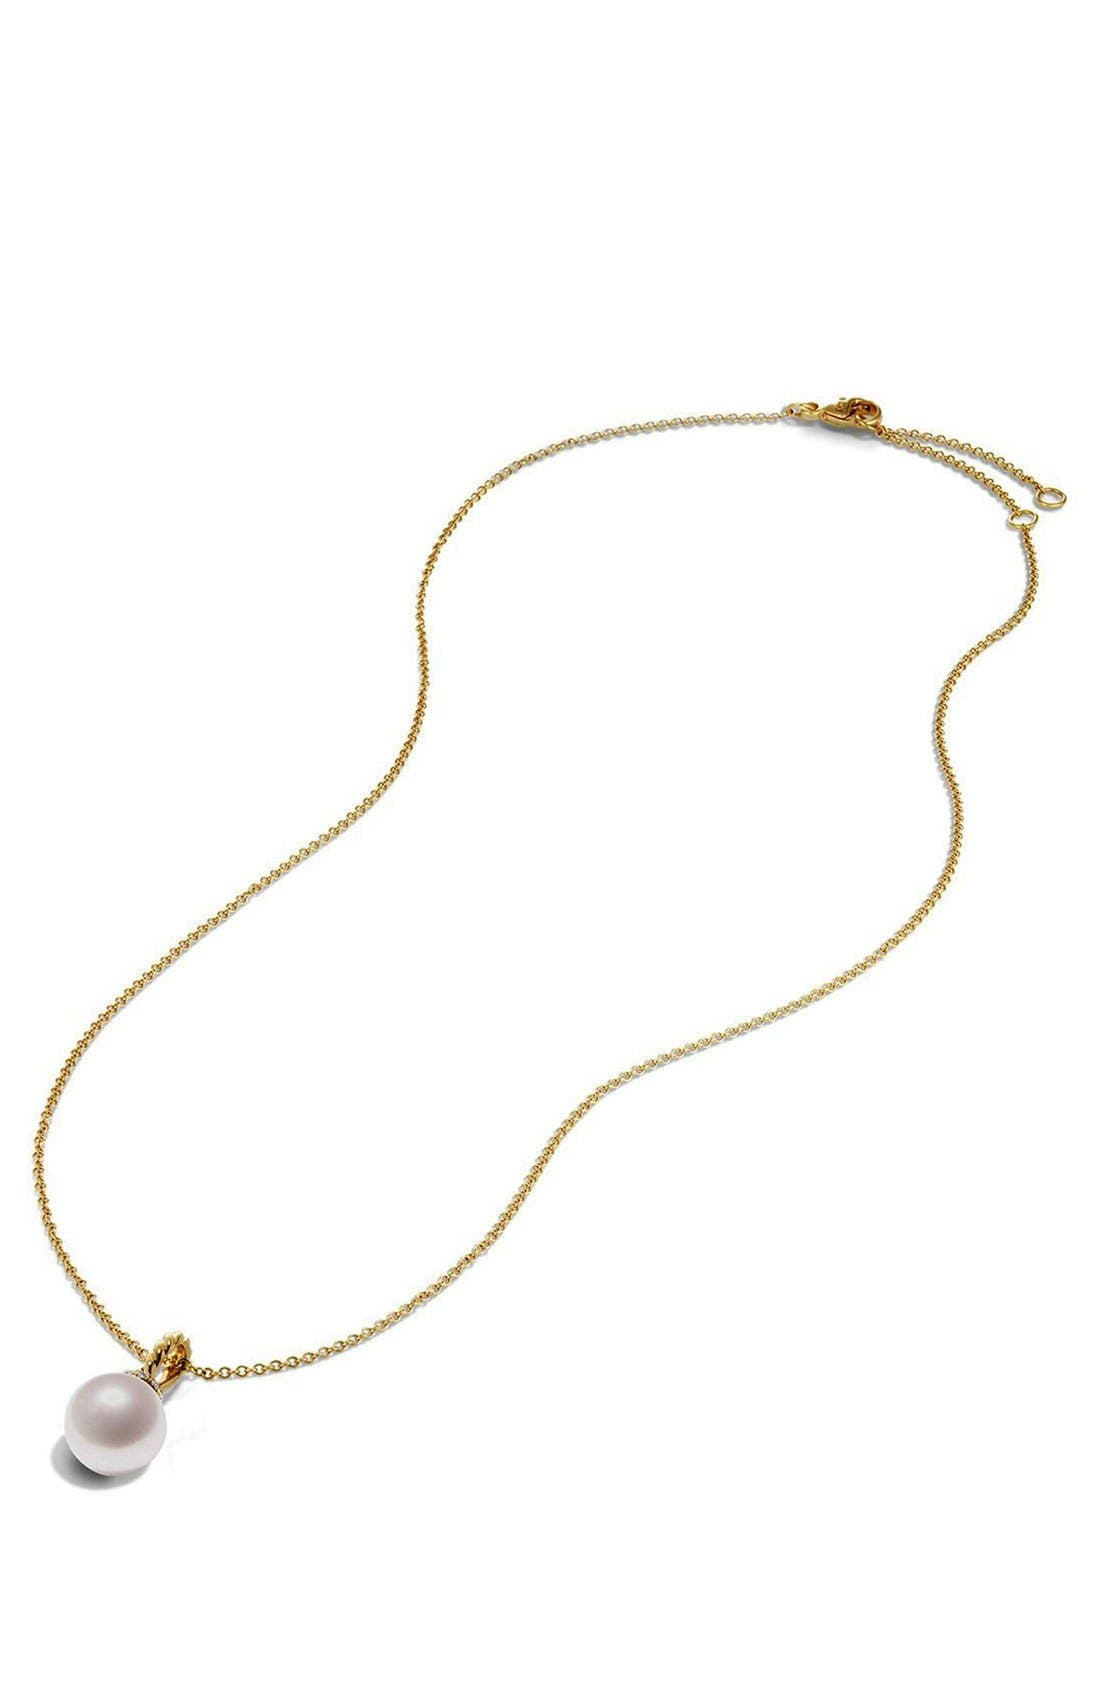 'Solari' Pendant Necklace with Pearls and Diamonds in 18K Gold,                             Alternate thumbnail 3, color,                             PEARL